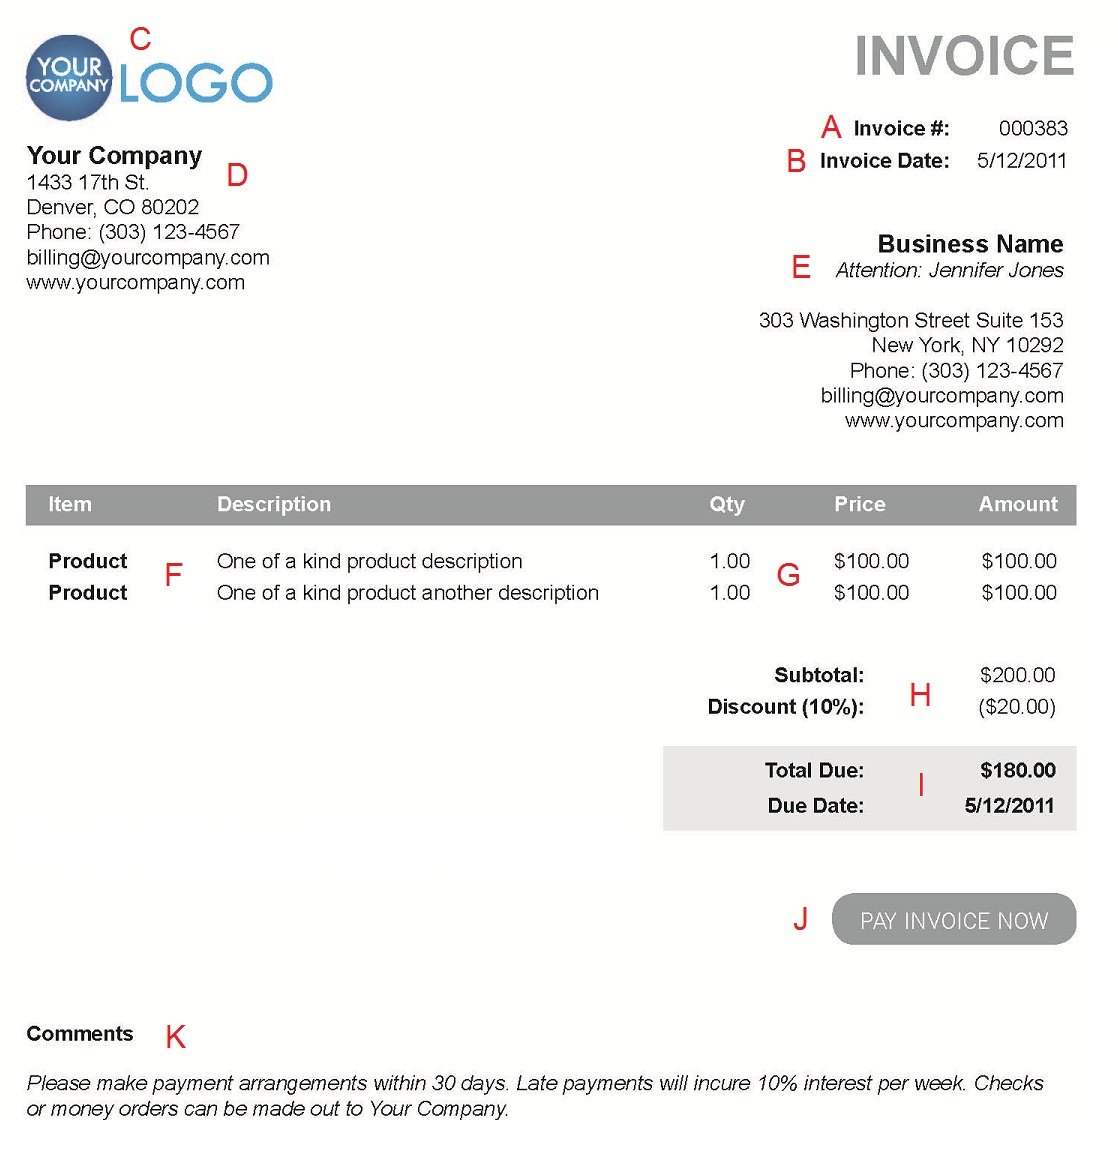 Coolmathgamesus  Outstanding The  Different Sections Of An Electronic Payment Invoice With Excellent A  With Lovely Bmw X Invoice Also Designing An Invoice In Addition Sample Of Commercial Invoice And Consular Invoice Pdf As Well As Zoho Invoice Templates Additionally Invoice Collection Letter From Paysimplecom With Coolmathgamesus  Excellent The  Different Sections Of An Electronic Payment Invoice With Lovely A  And Outstanding Bmw X Invoice Also Designing An Invoice In Addition Sample Of Commercial Invoice From Paysimplecom